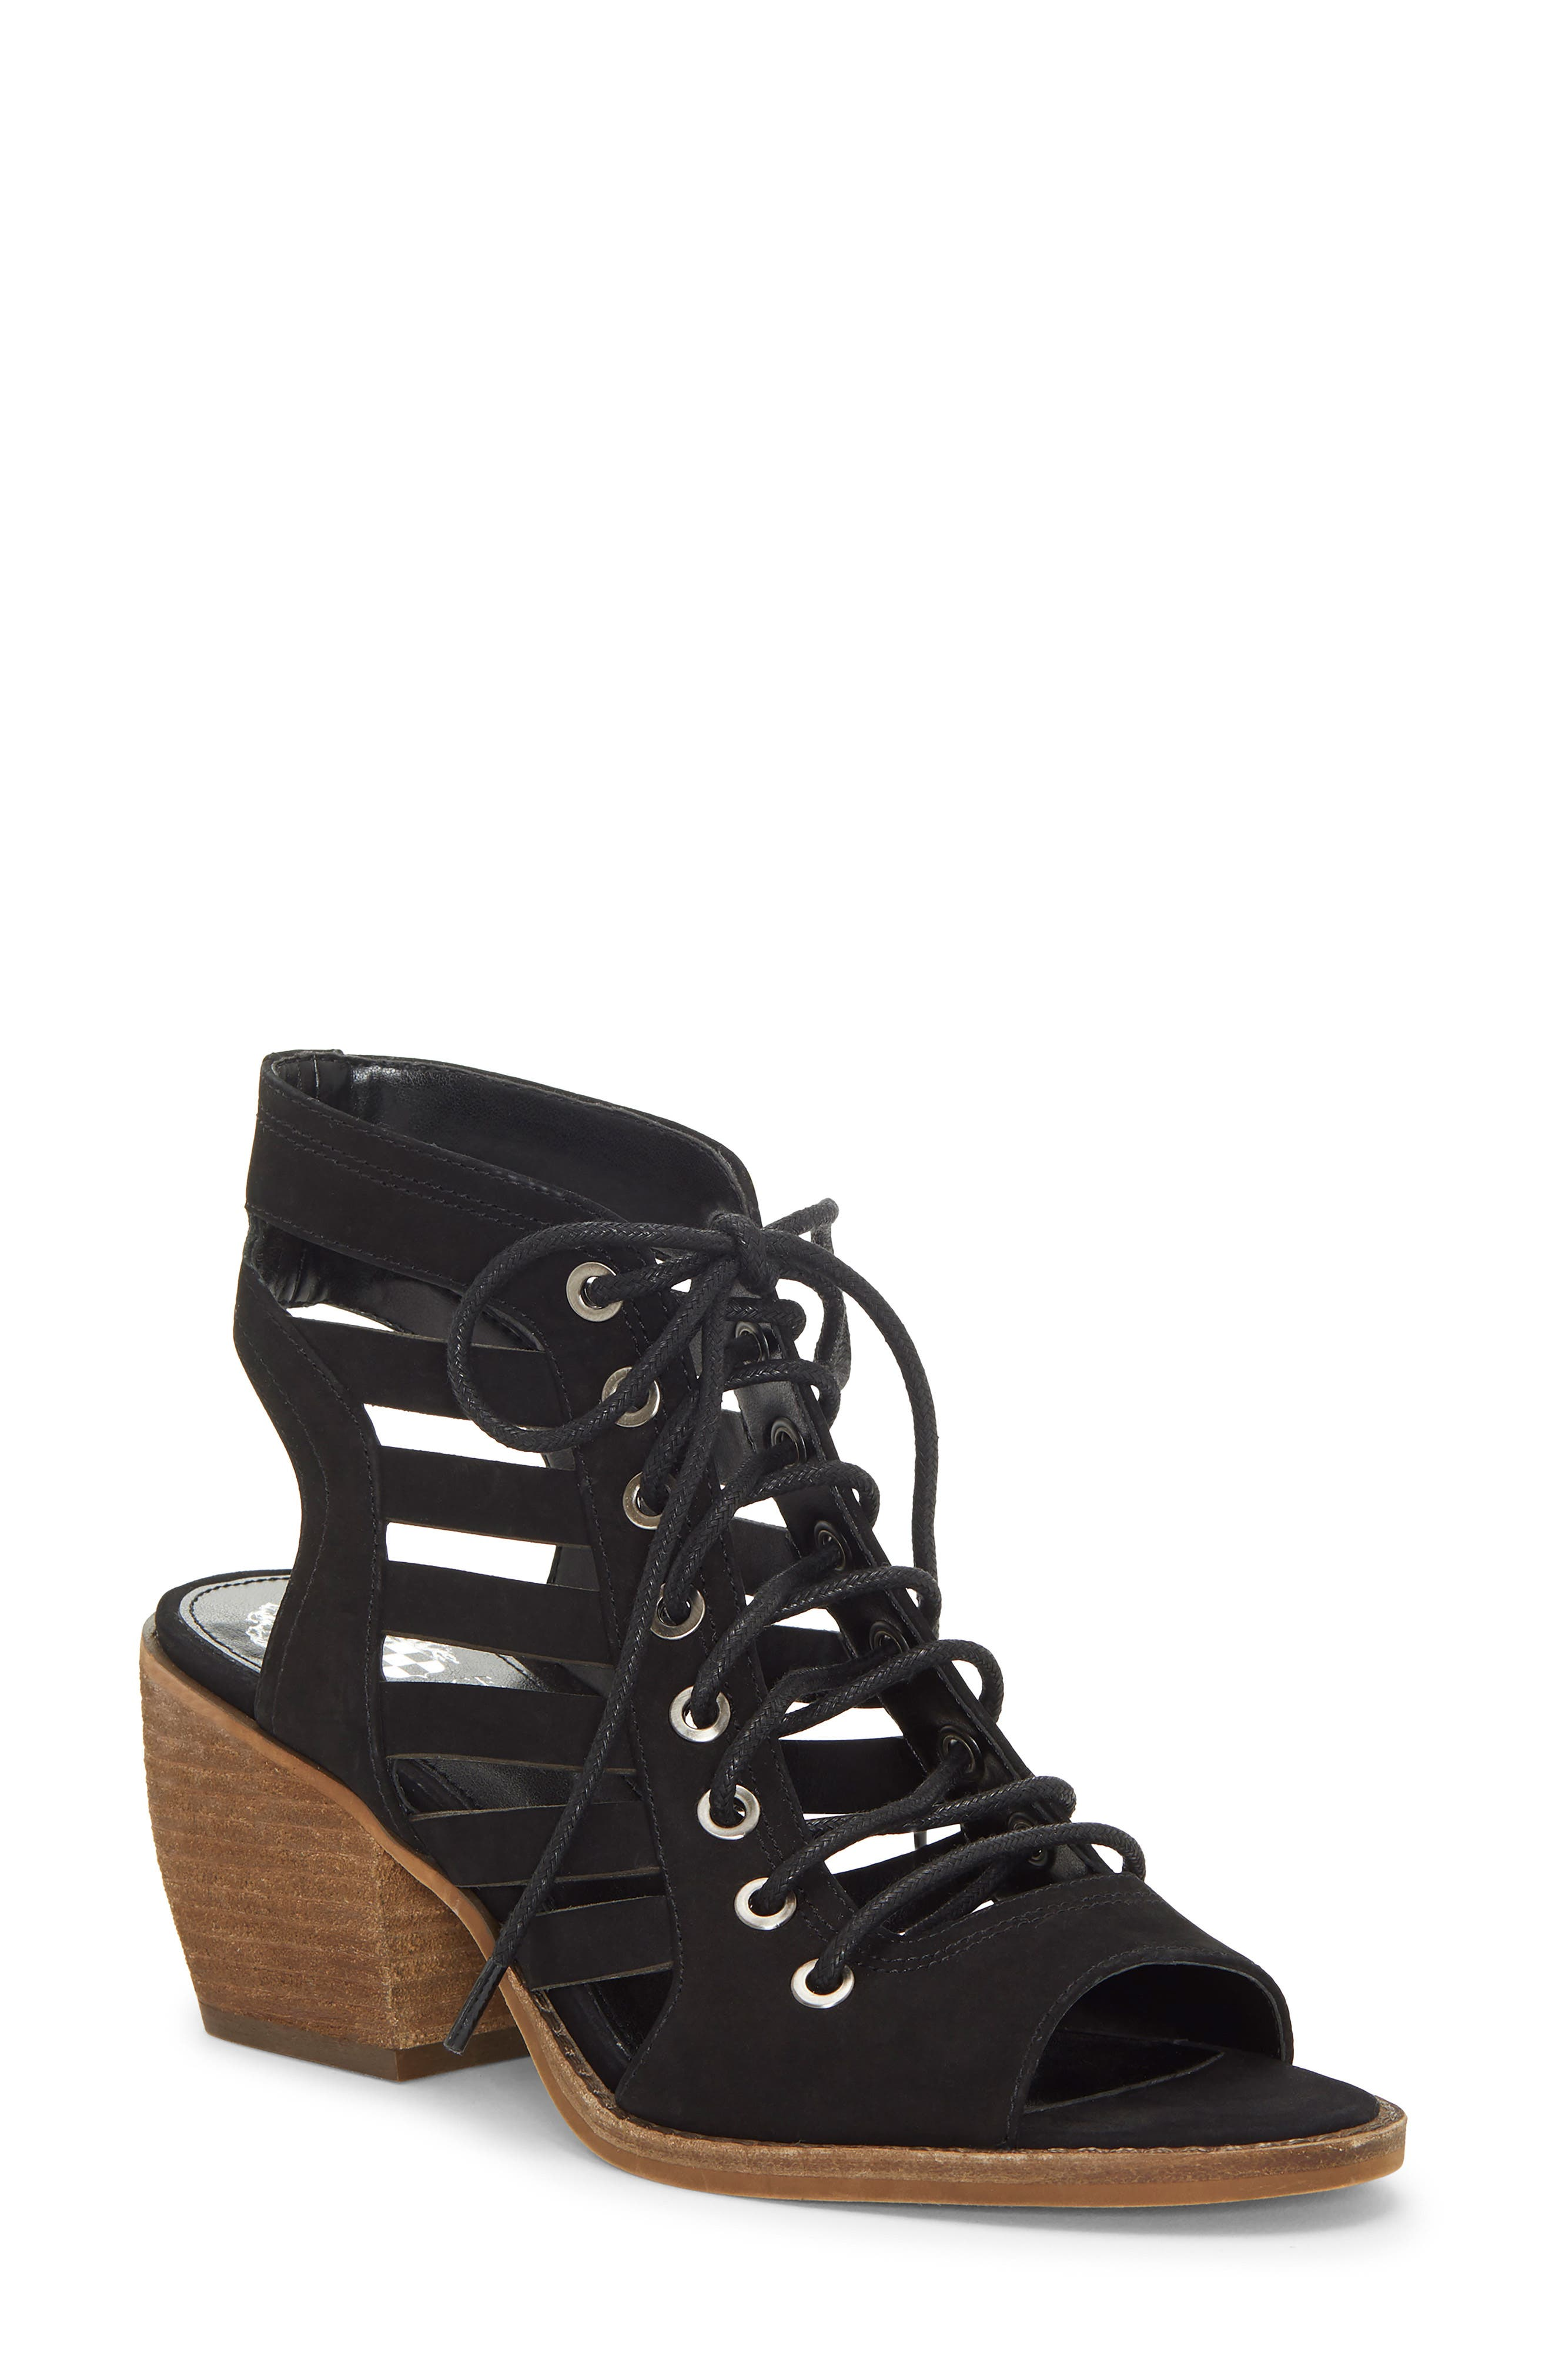 Vince Camuto Chesten Lace-Up Sandal- Black